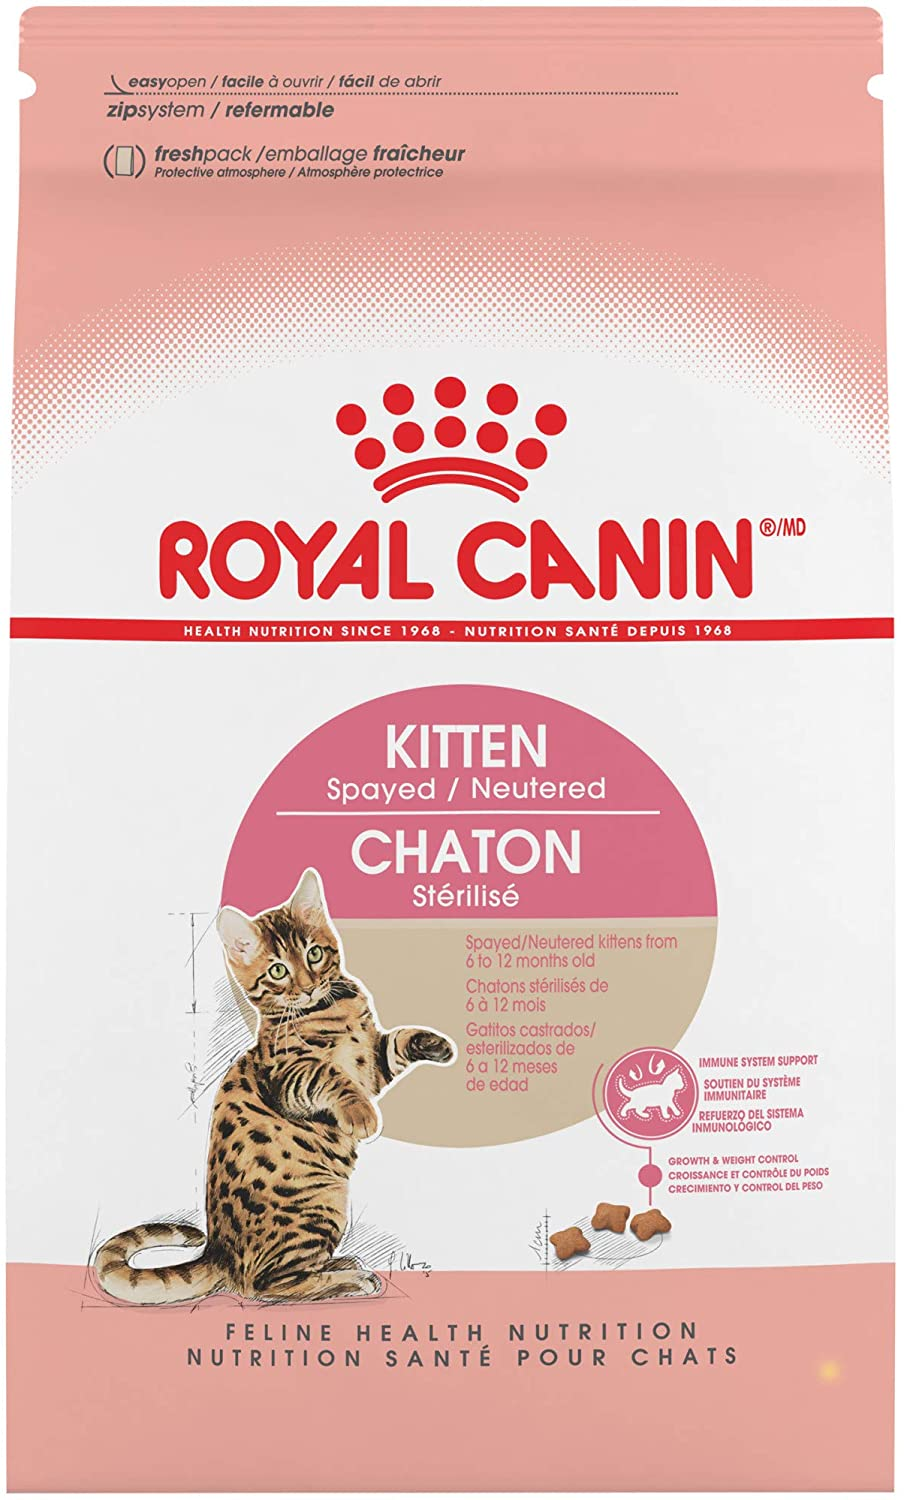 Royal Canin Feline Health Nutrition Spayed/Neutered Dry Cat Food for Kittens, 2.5 Pound Bag